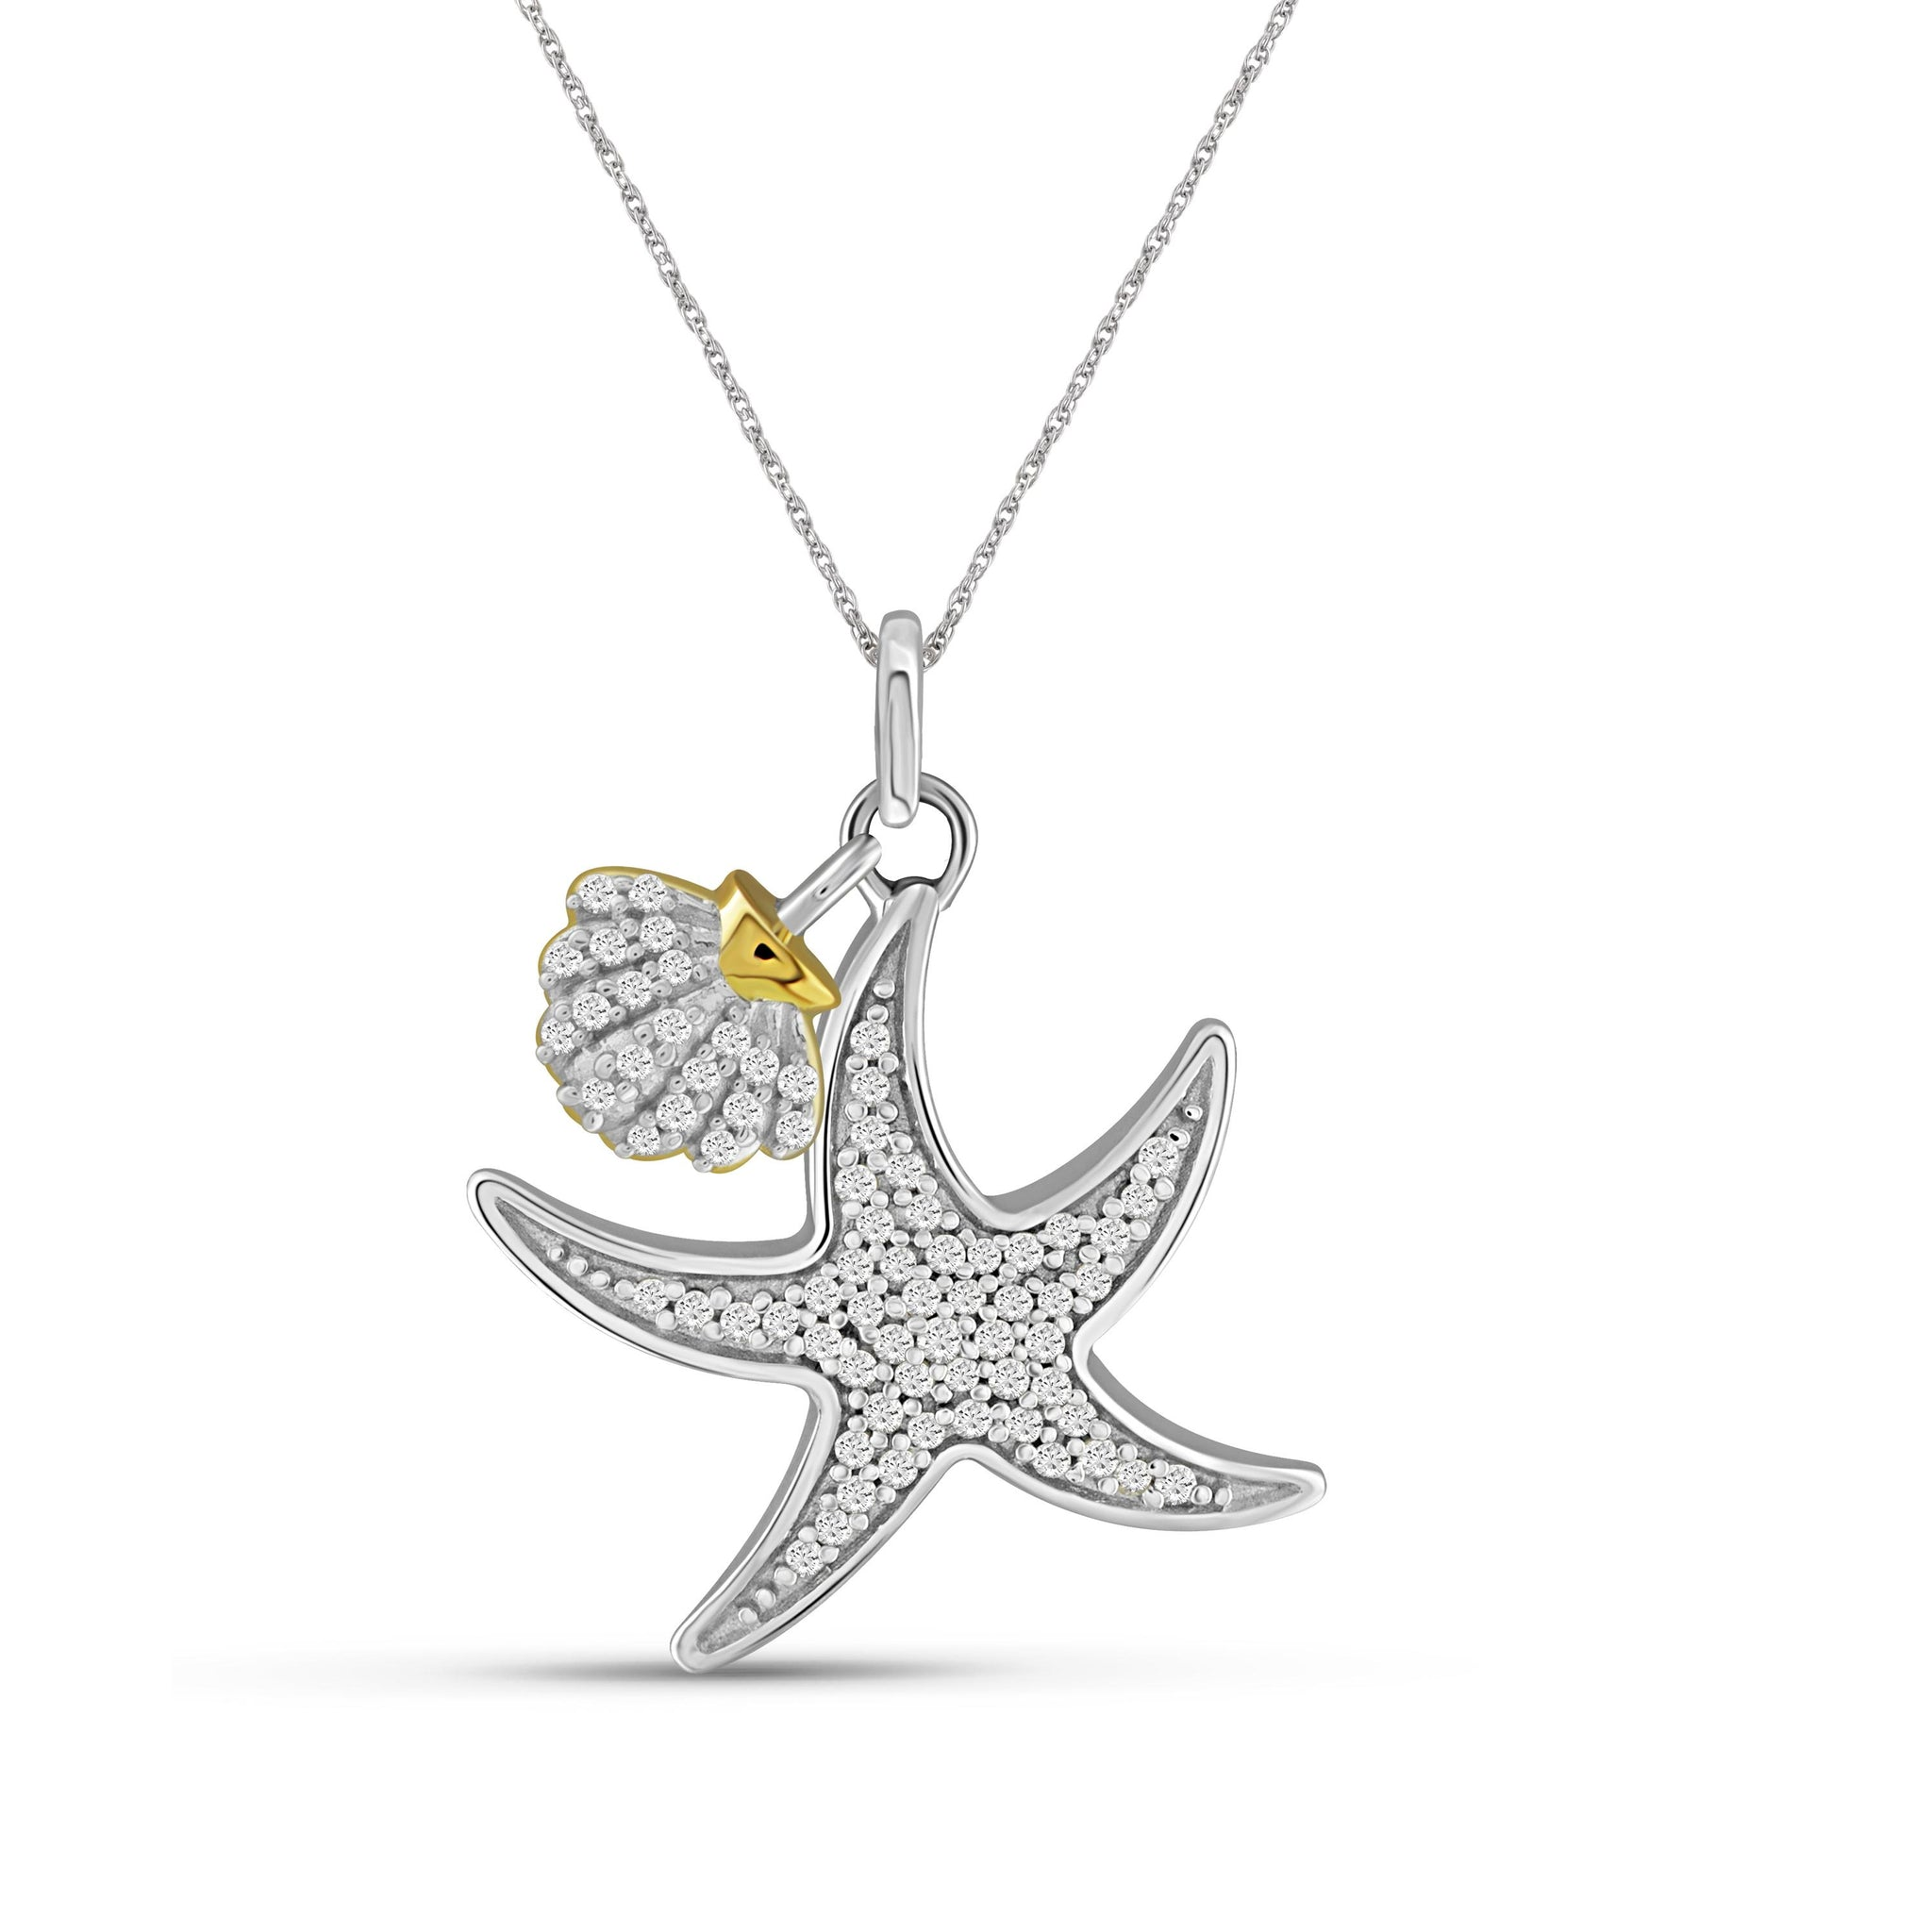 JewelonFire 1/5 Carat T.W. White Diamond Two Tone Silver Seashell Starfish Pendant